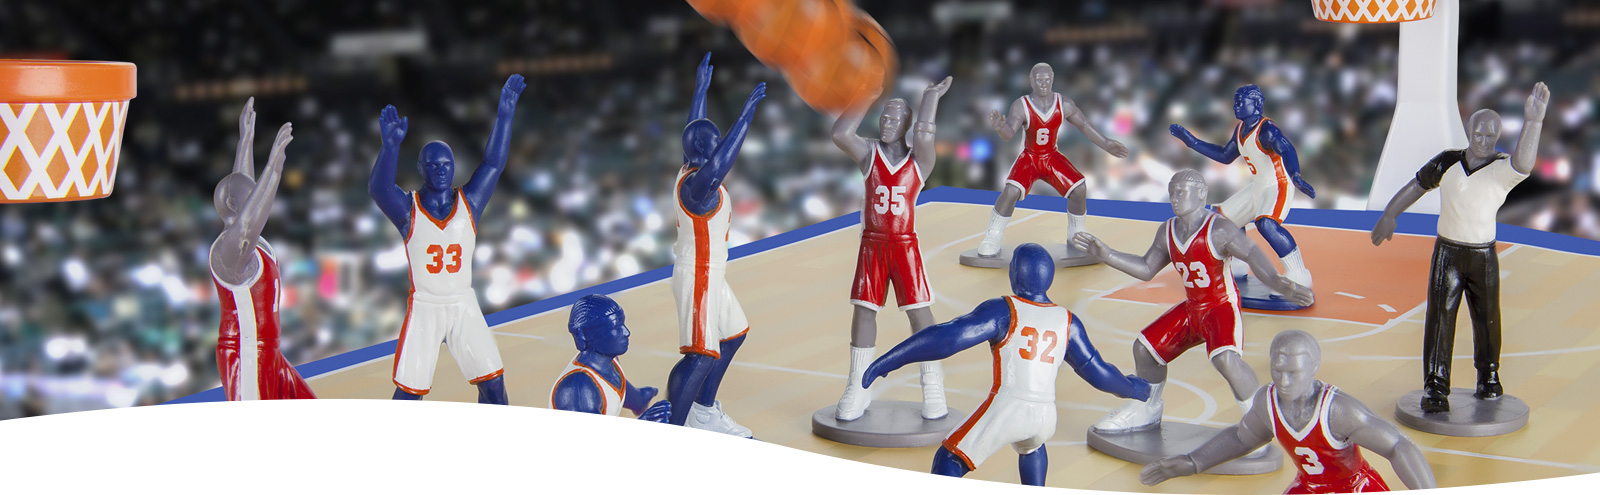 Basketball Action Figures